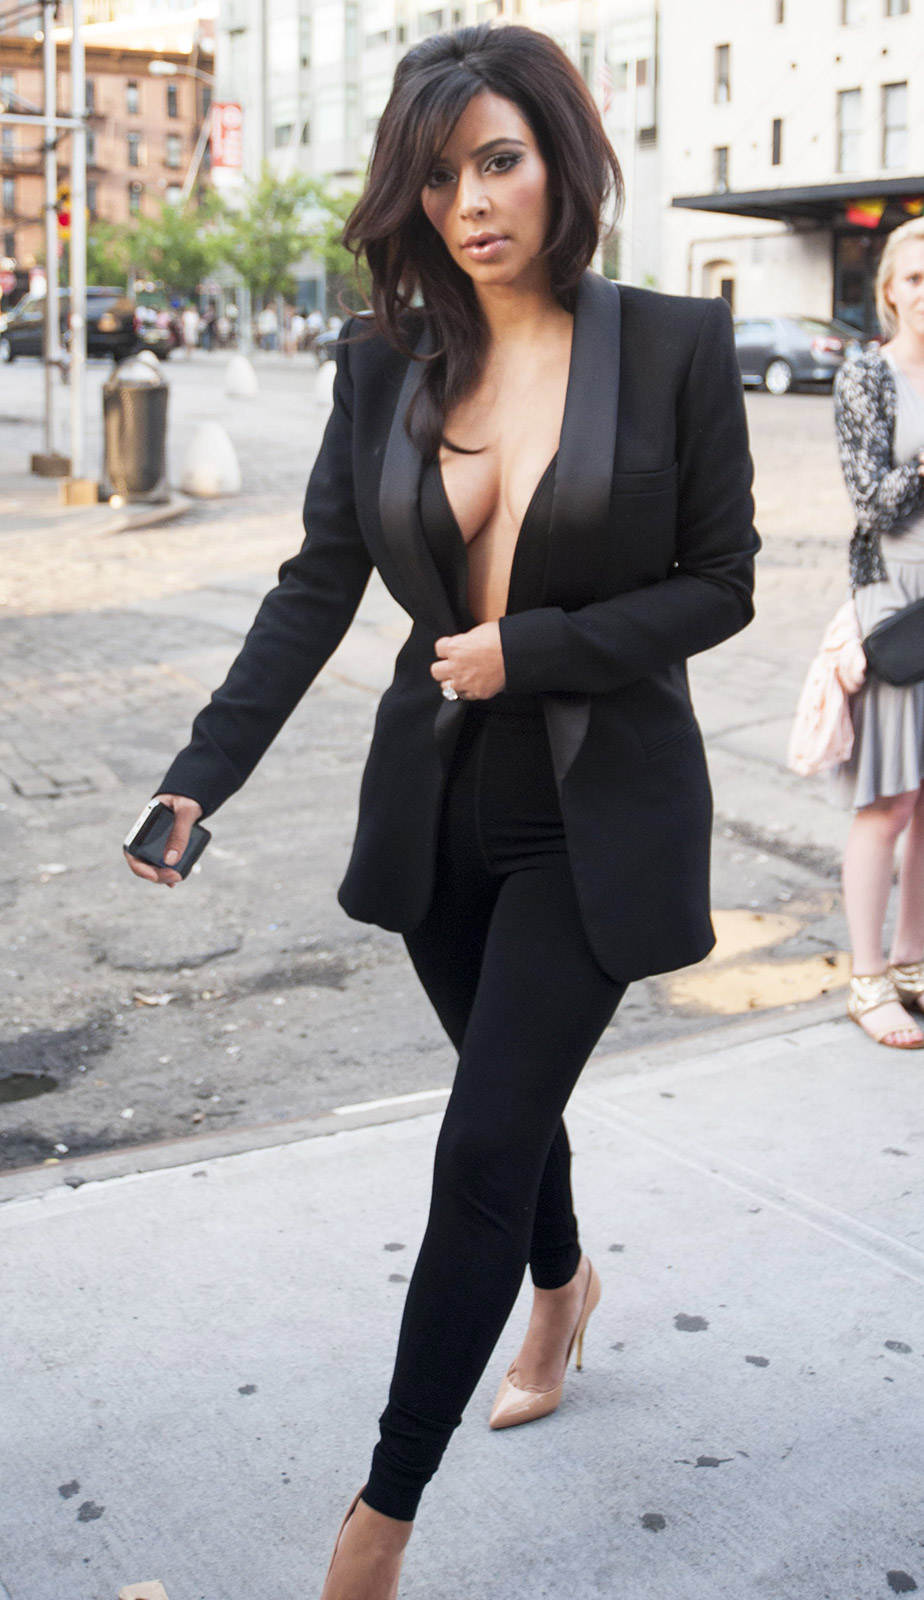 Kim Kardashian Wears Revealing, Cleavage-Baring Suit to Dinner with Kourtney Kardashian [Photo]